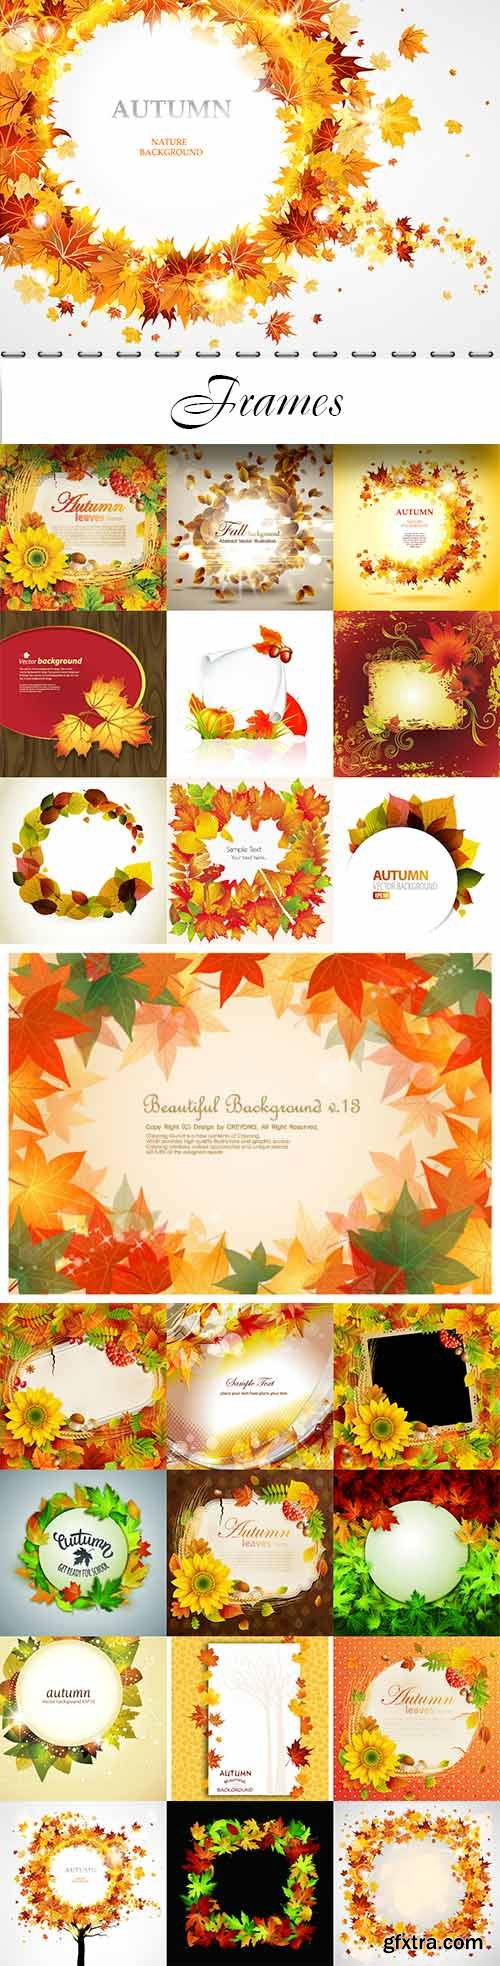 Autumn vector backgrounds collection - Frames